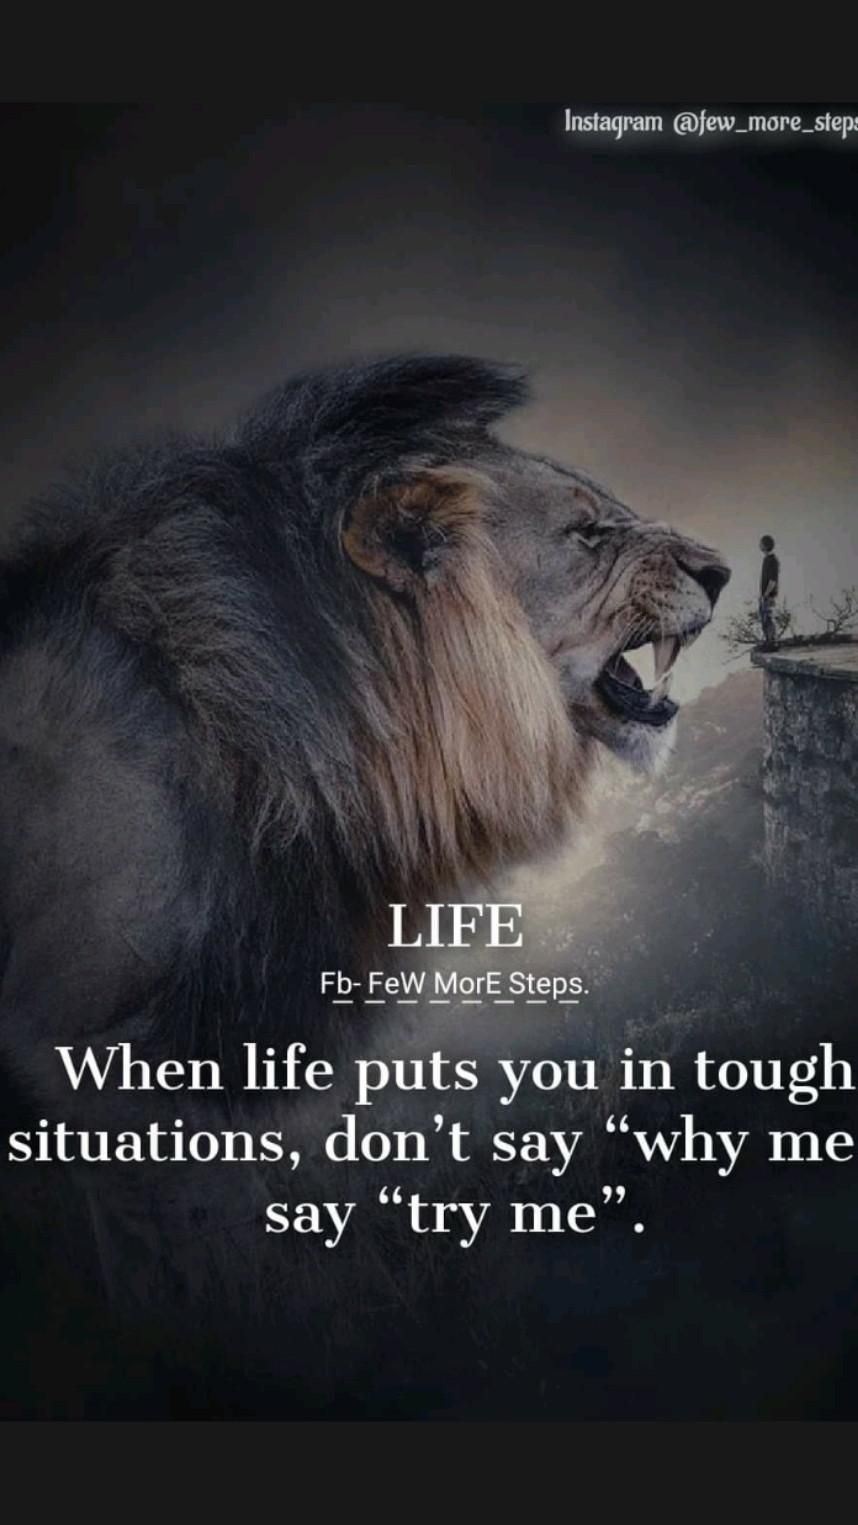 Every thing you battle all the struggles you go thru really is for your own personal growth 💯 👍